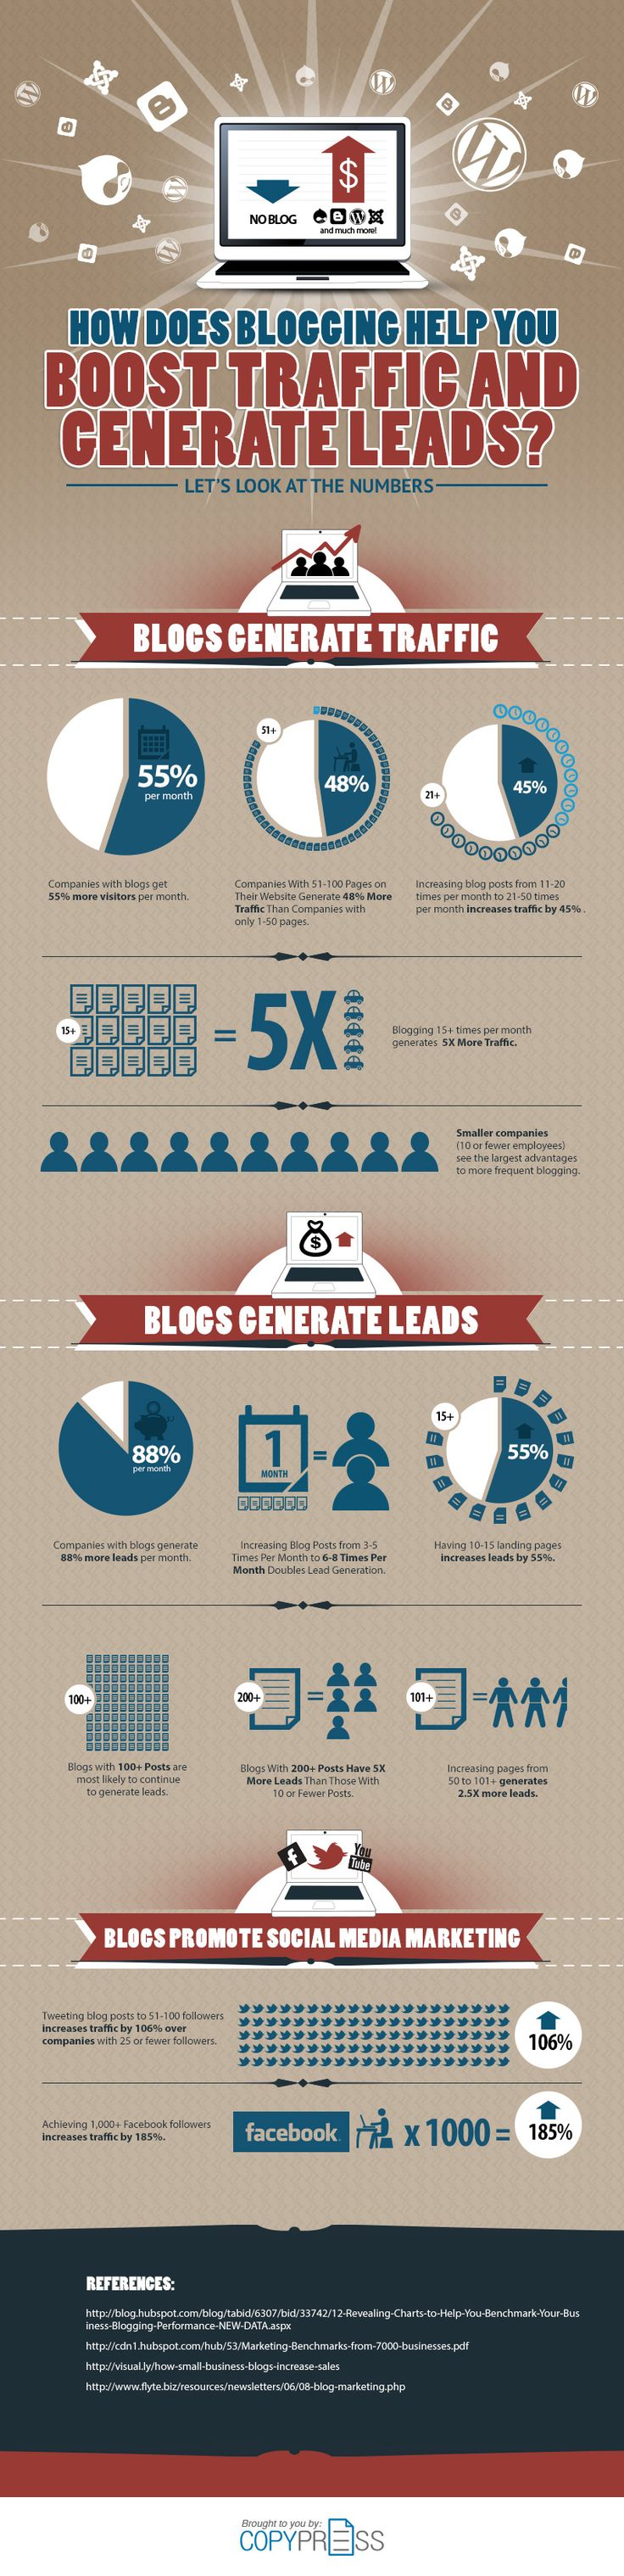 How Does Blogging Help You Boost Traffic and Generate Leads? [#Infographic]